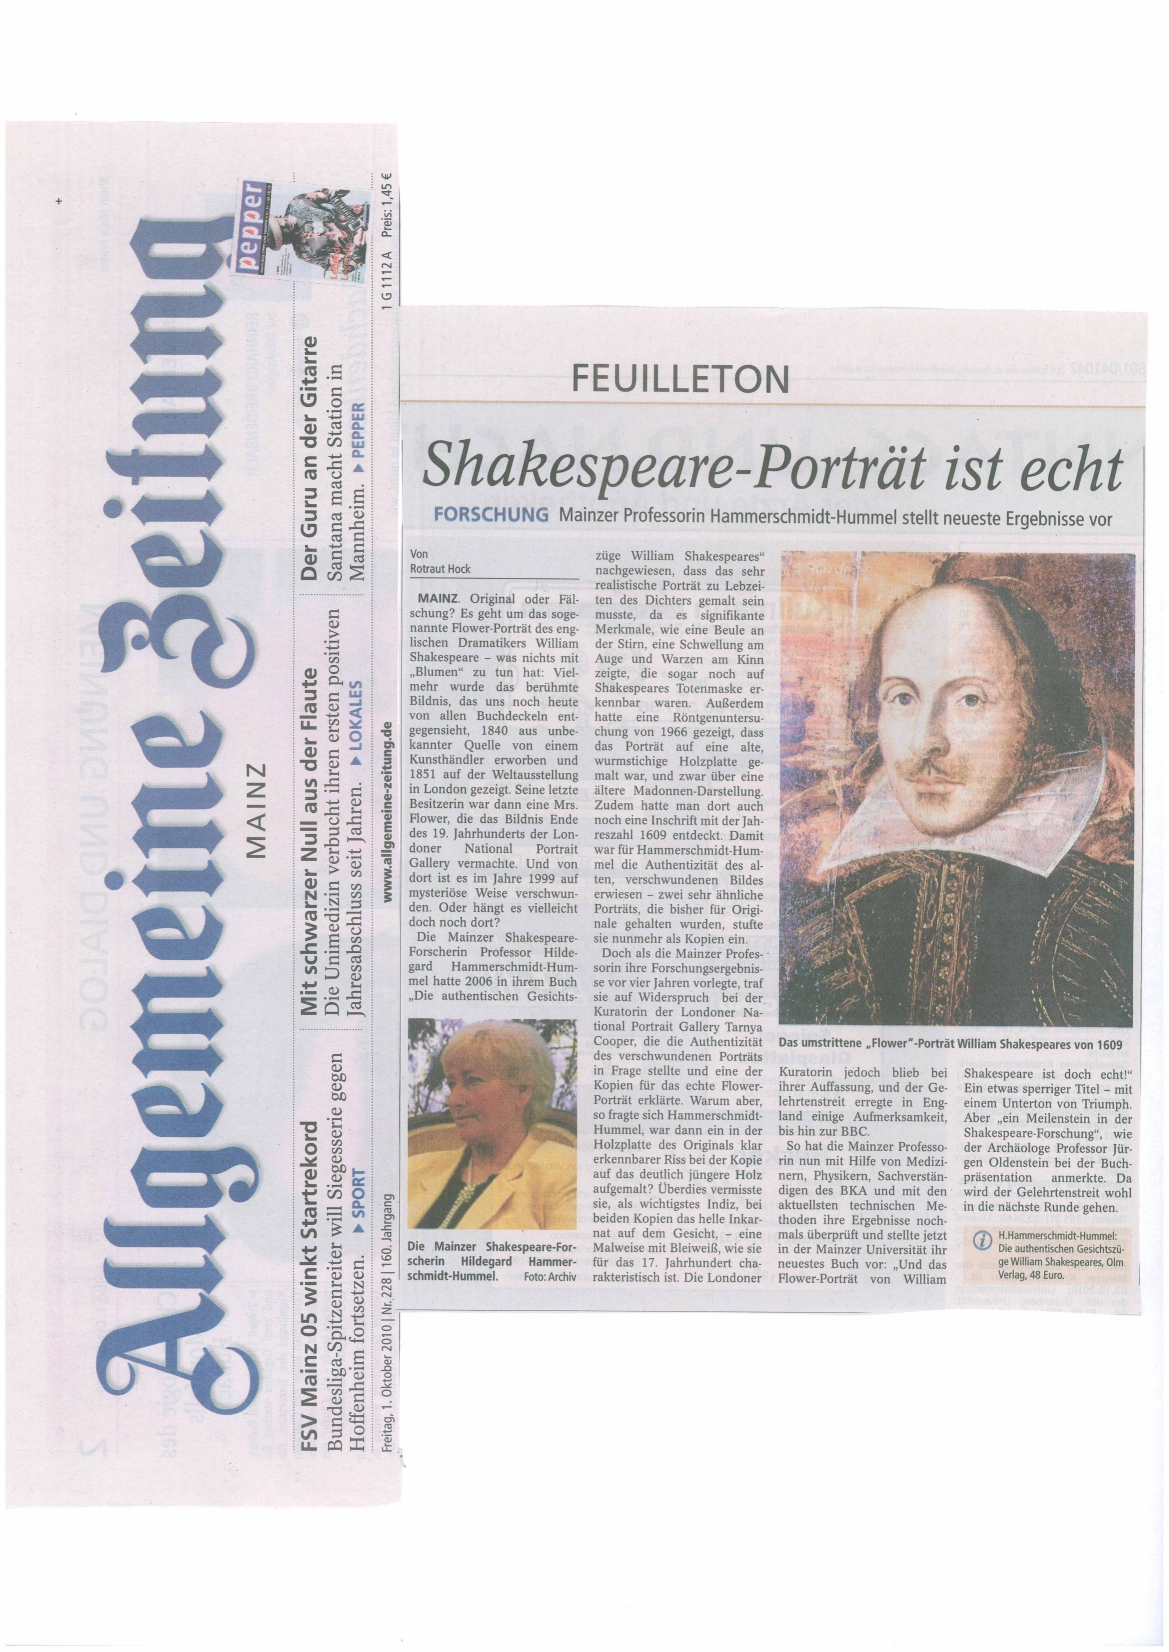 """william shakespeares authenticity essay William shakespeare's hamlet essay examples william shakespeare's hamlet shakespeare's works are rife with metatheatrical self-references as polonius blathers on about madness early in shakespeare's hamlet, gertrude ends the excessive bombast with the quip, """"more matter with less art"""" (hamlet, iii97."""